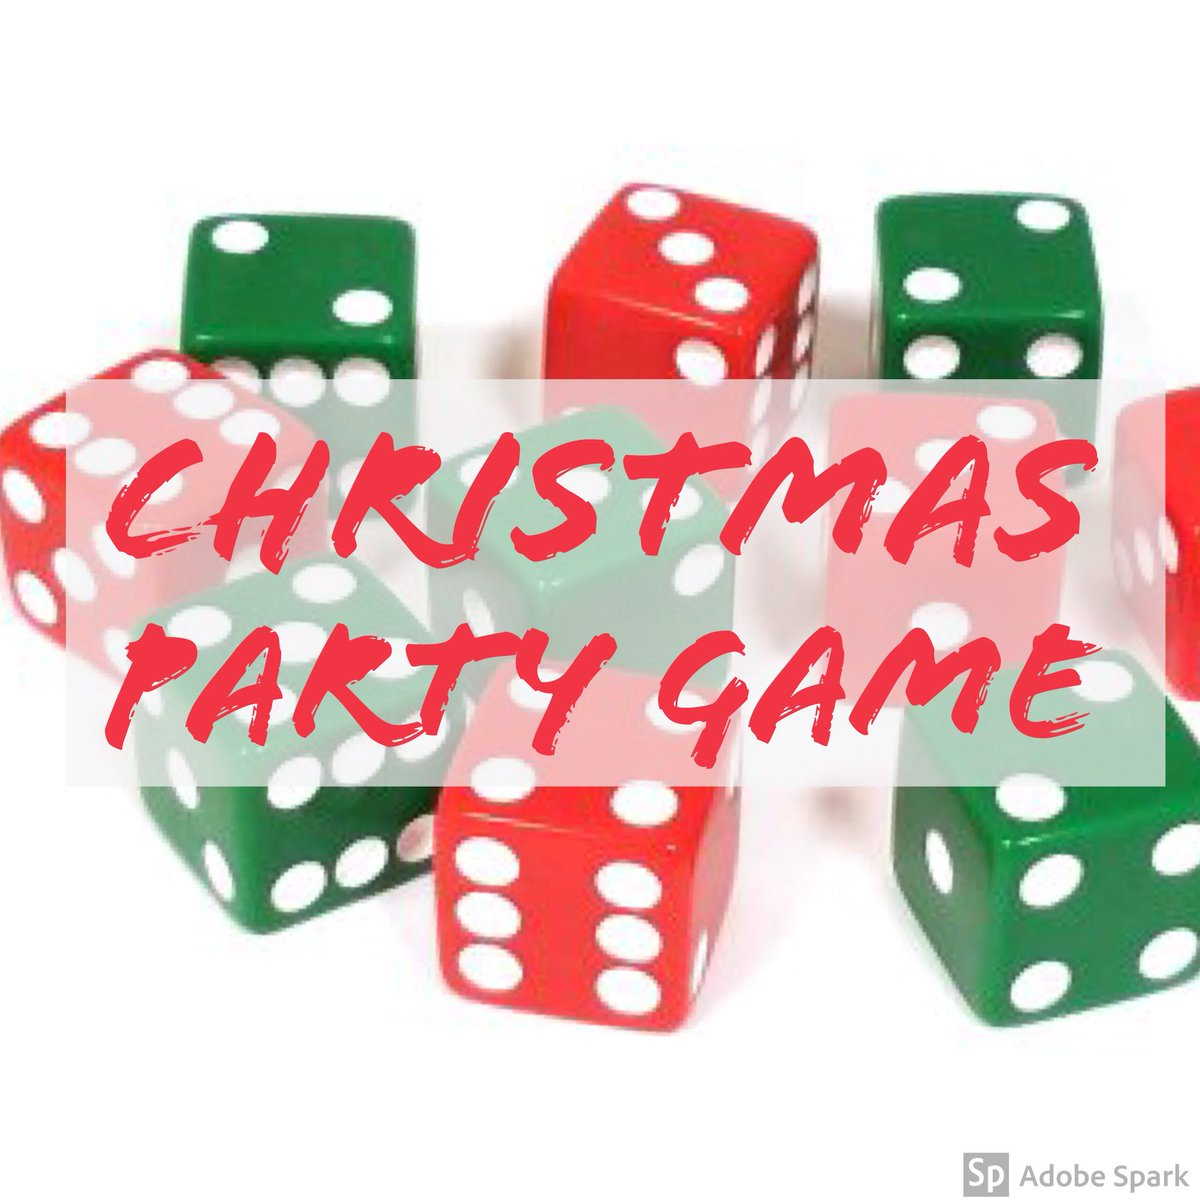 test Twitter Media - A fun Christmas game to play with your groups! https://t.co/M7pNPgBv79